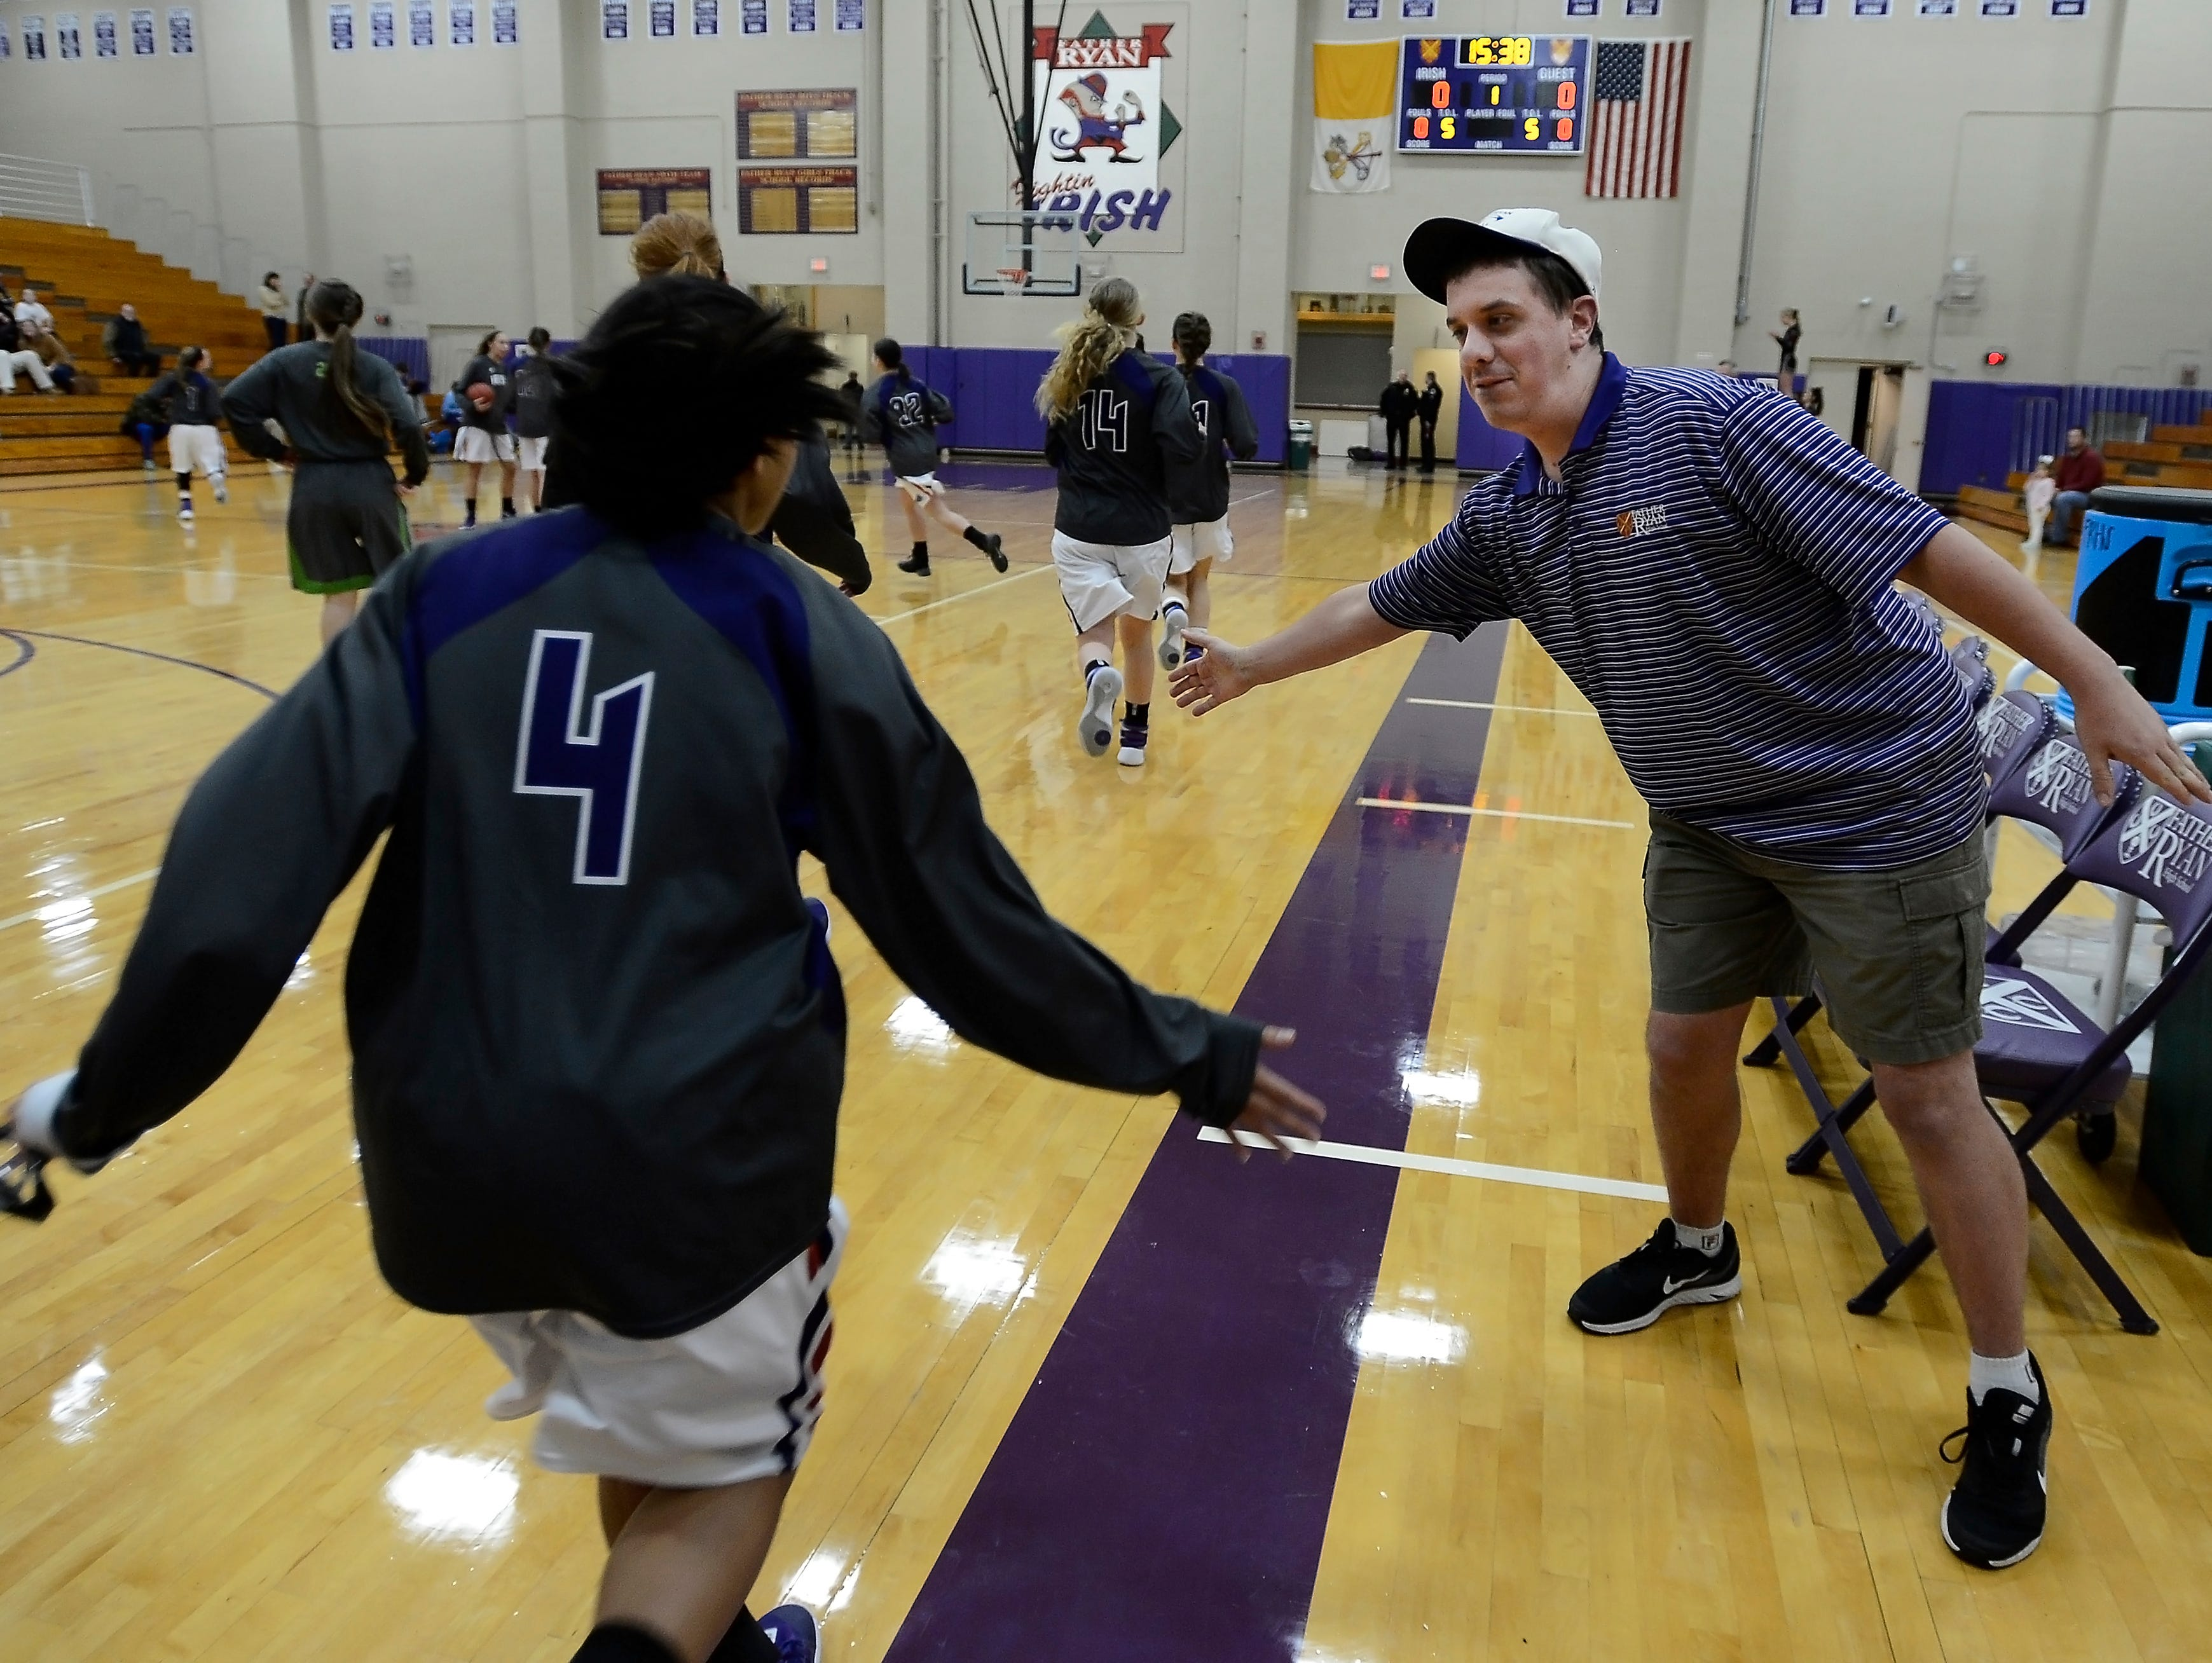 Sean Druffel slaps hands with Father Ryan High School girls varsity basketball player Adee Embry as the team runs onto the court for warm ups before a basketball game on Jan 5 in Nashville.